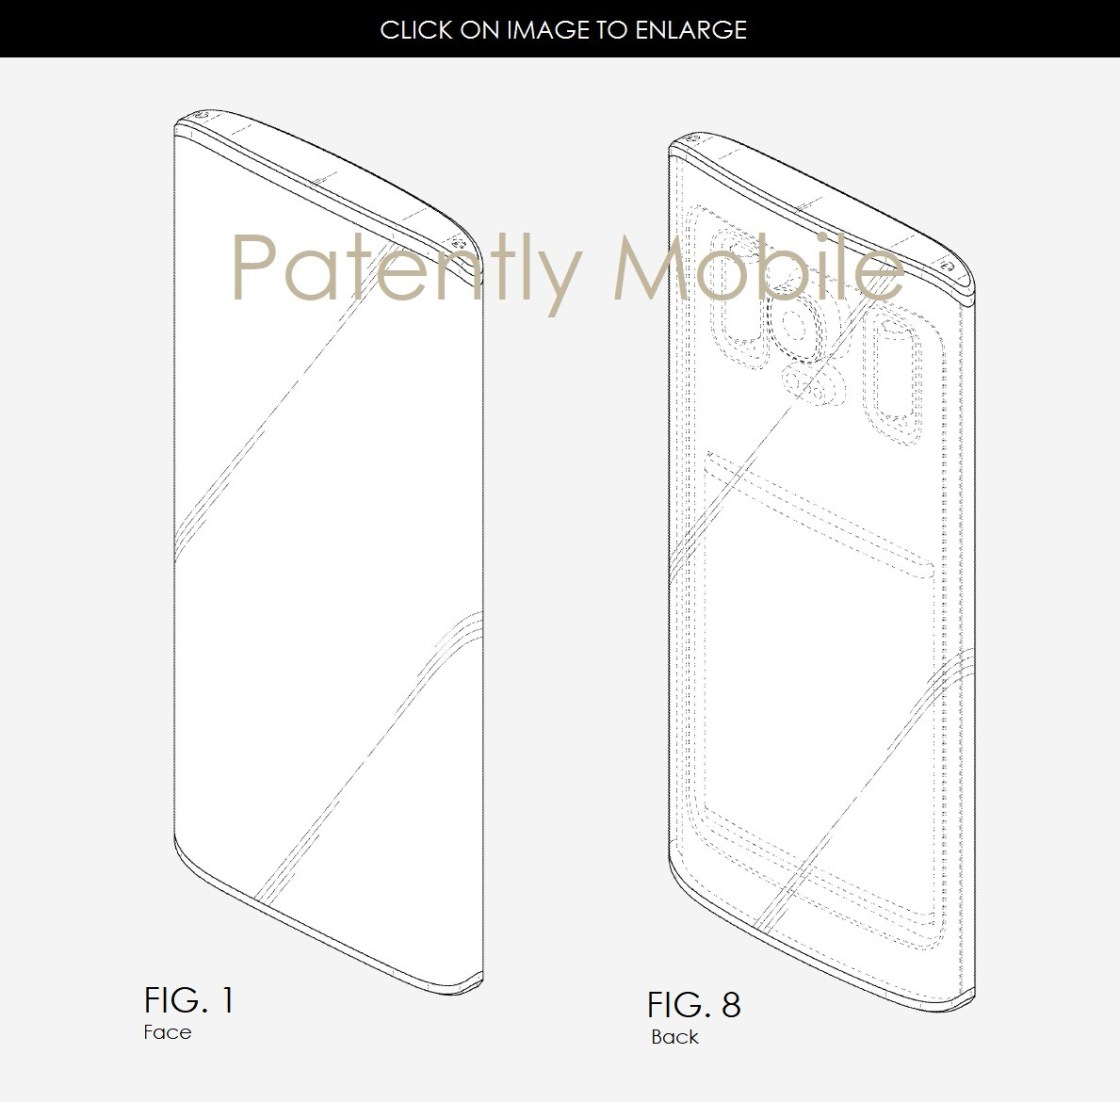 New Samsung Patents